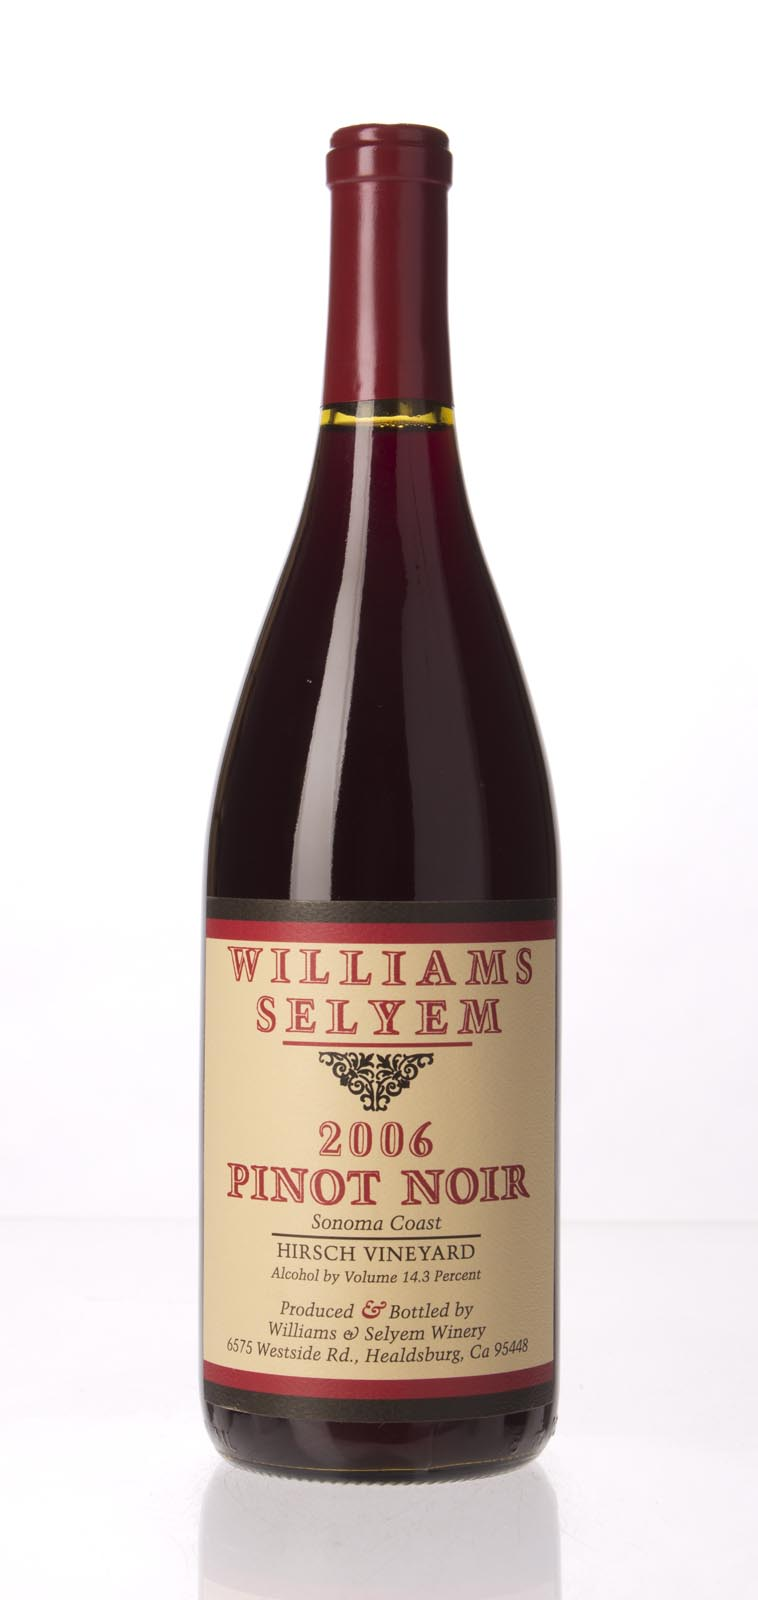 Williams Selyem Pinot Noir Hirsch Vineyard 2006, 750mL (ST92+) from The BPW - Merchants of rare and fine wines.